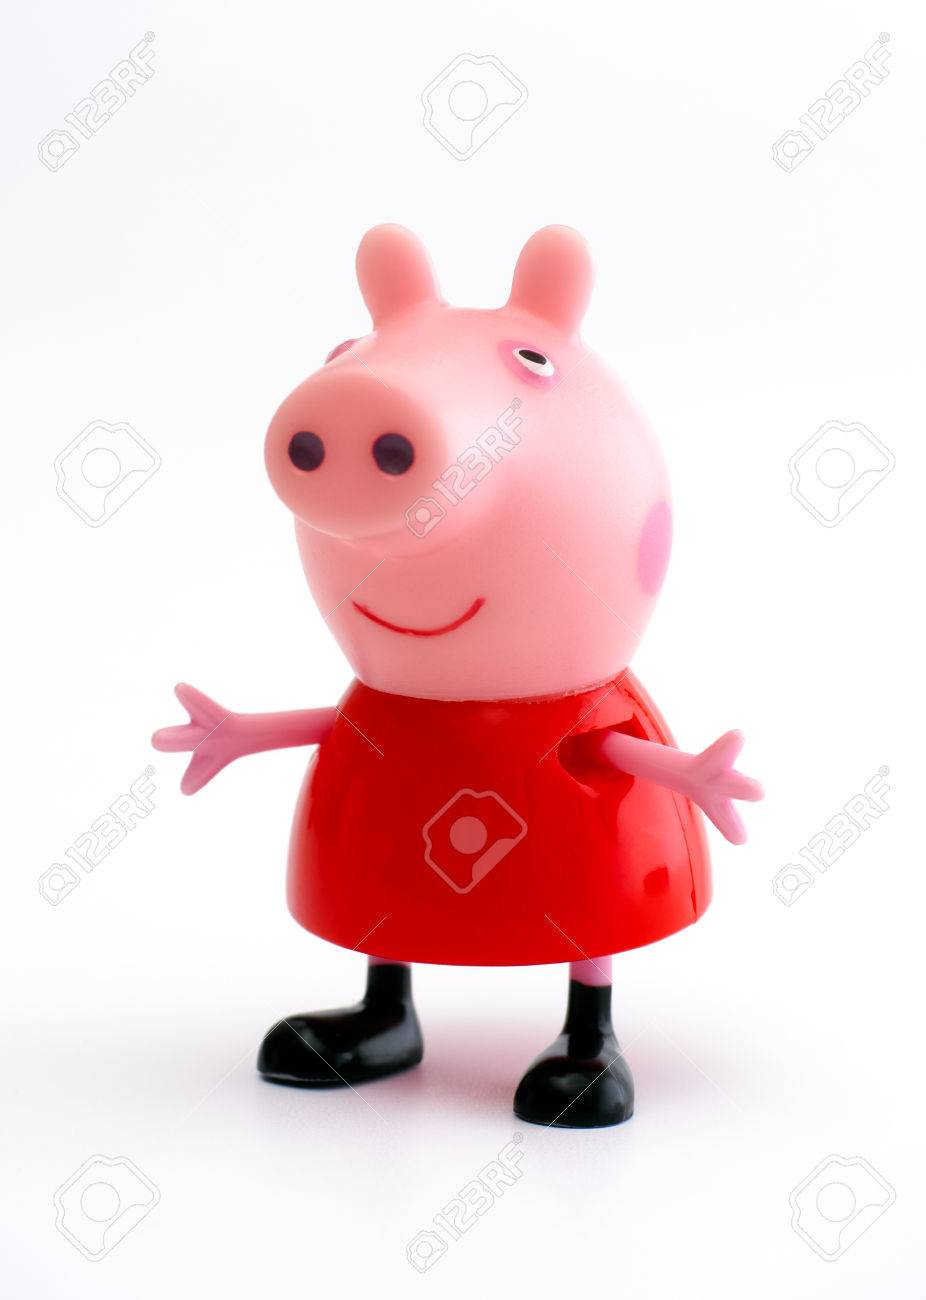 Federation Peppa 162015 TambovRussian Toy Pig December 8Nvwm0n